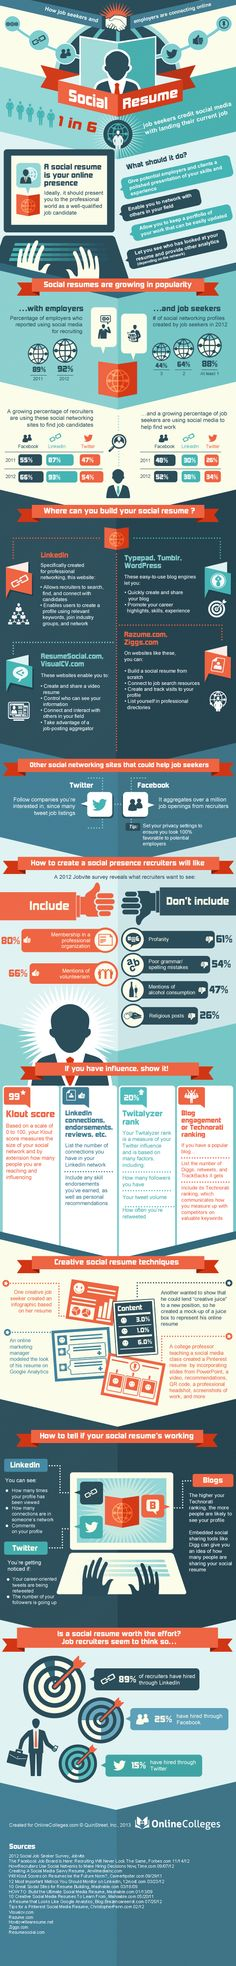 Why You Should Create a Social Media CV [INFOGRAPHIC]